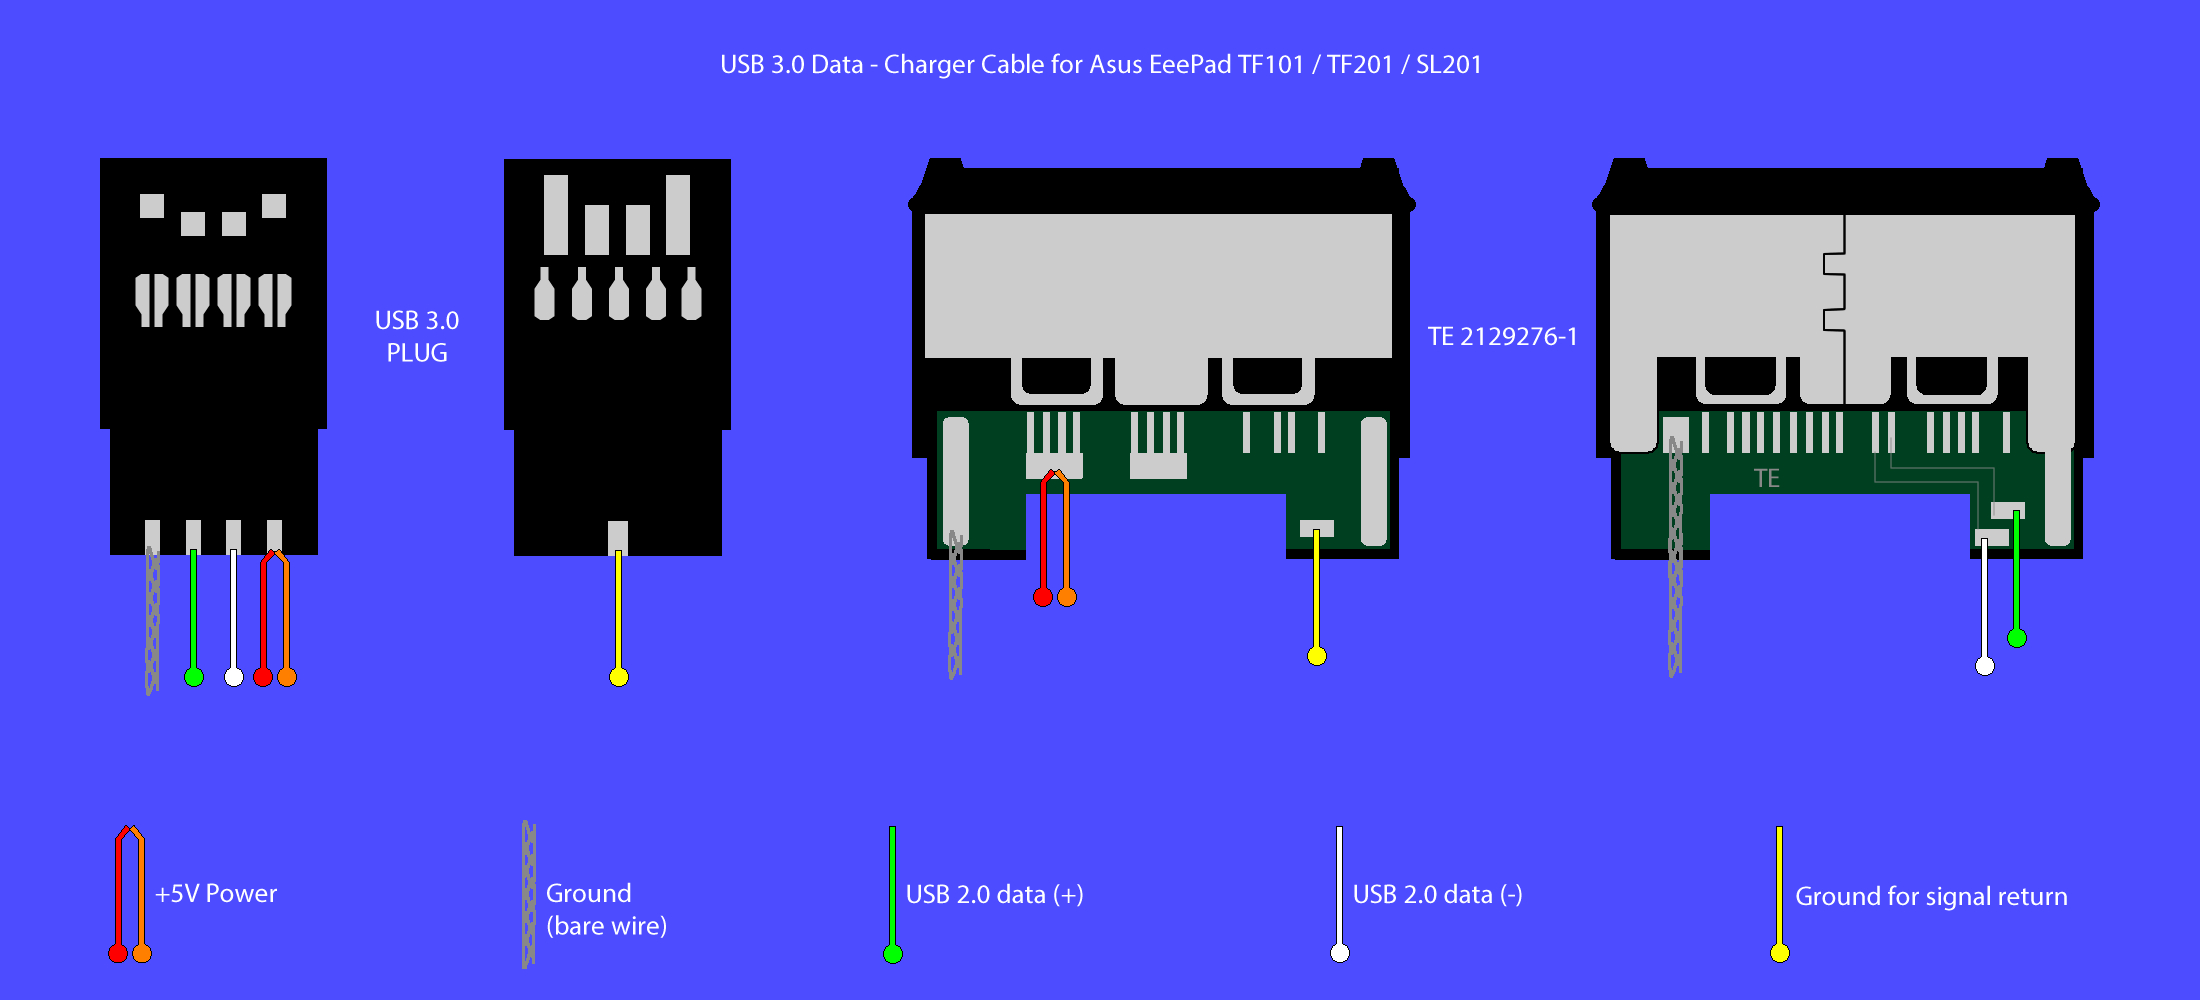 Iphone 5 Lightning To Usb Cable Wiring Diagram | Wiring Diagram - Usb To Iphone 5 Cable Wiring Diagram